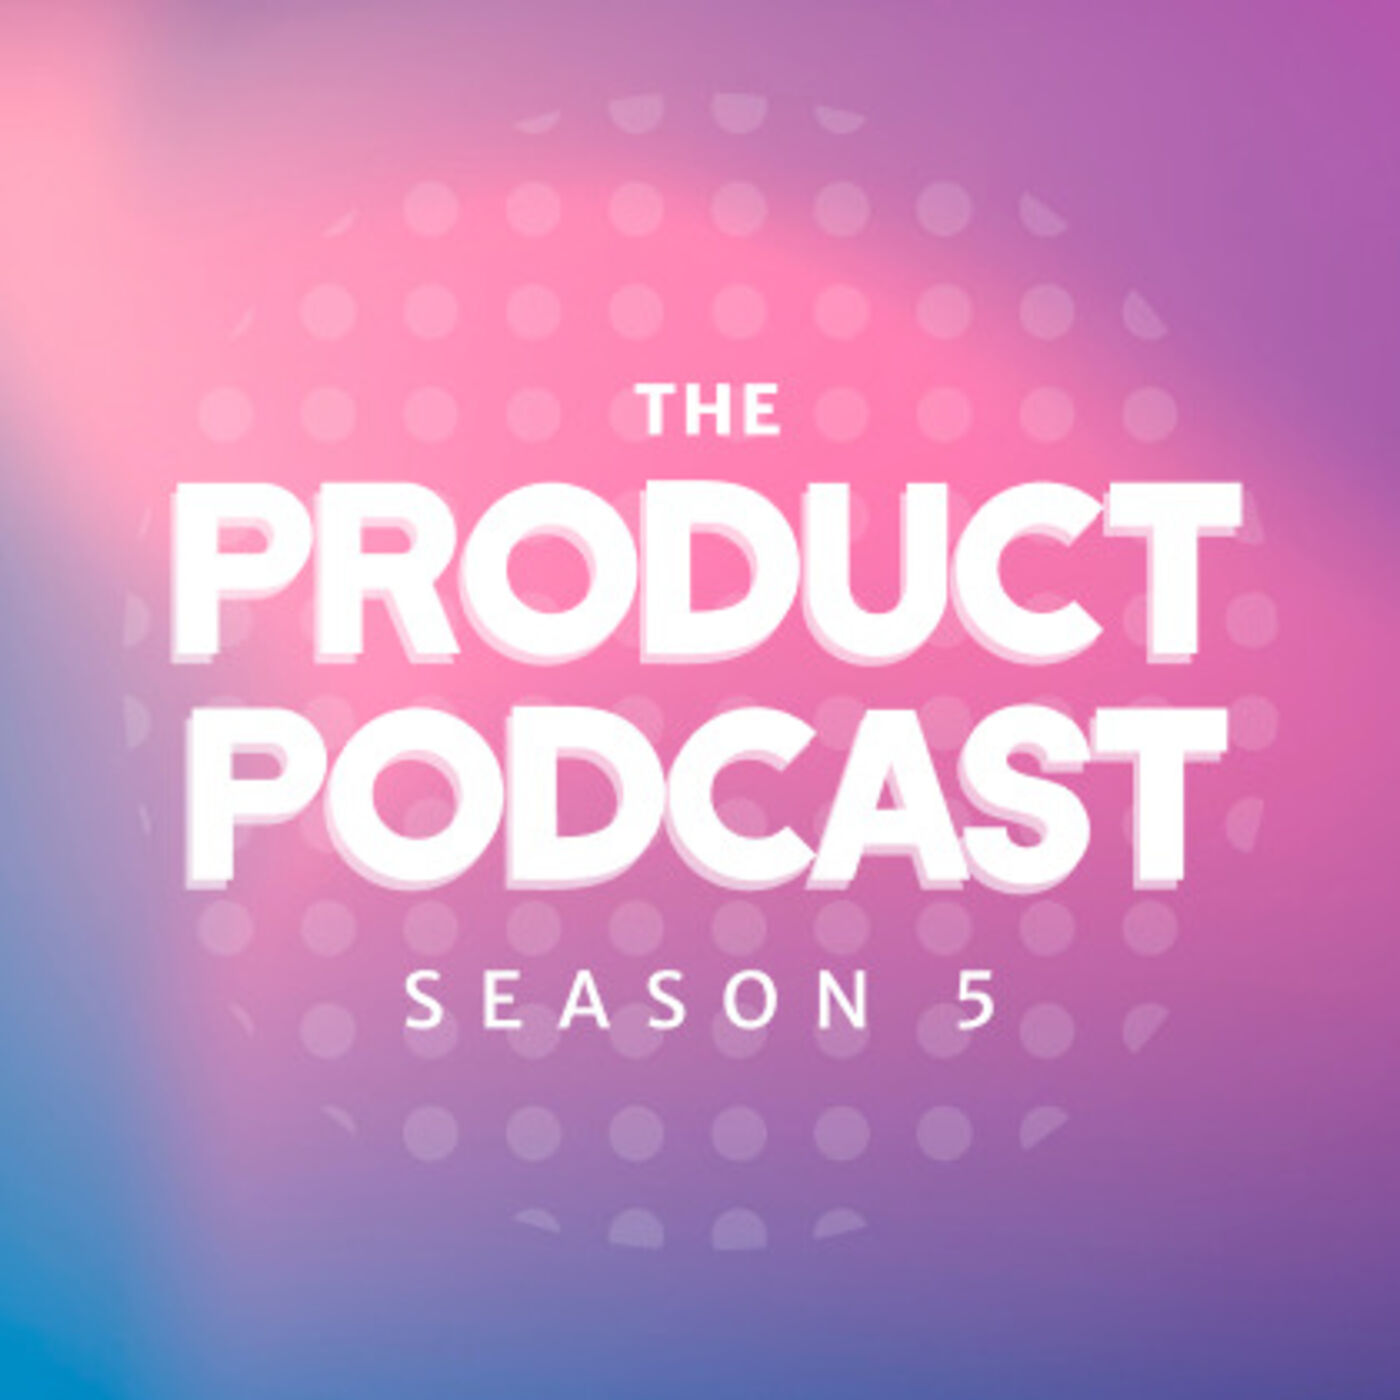 Starting Products from Scratch with HubSpot CPO